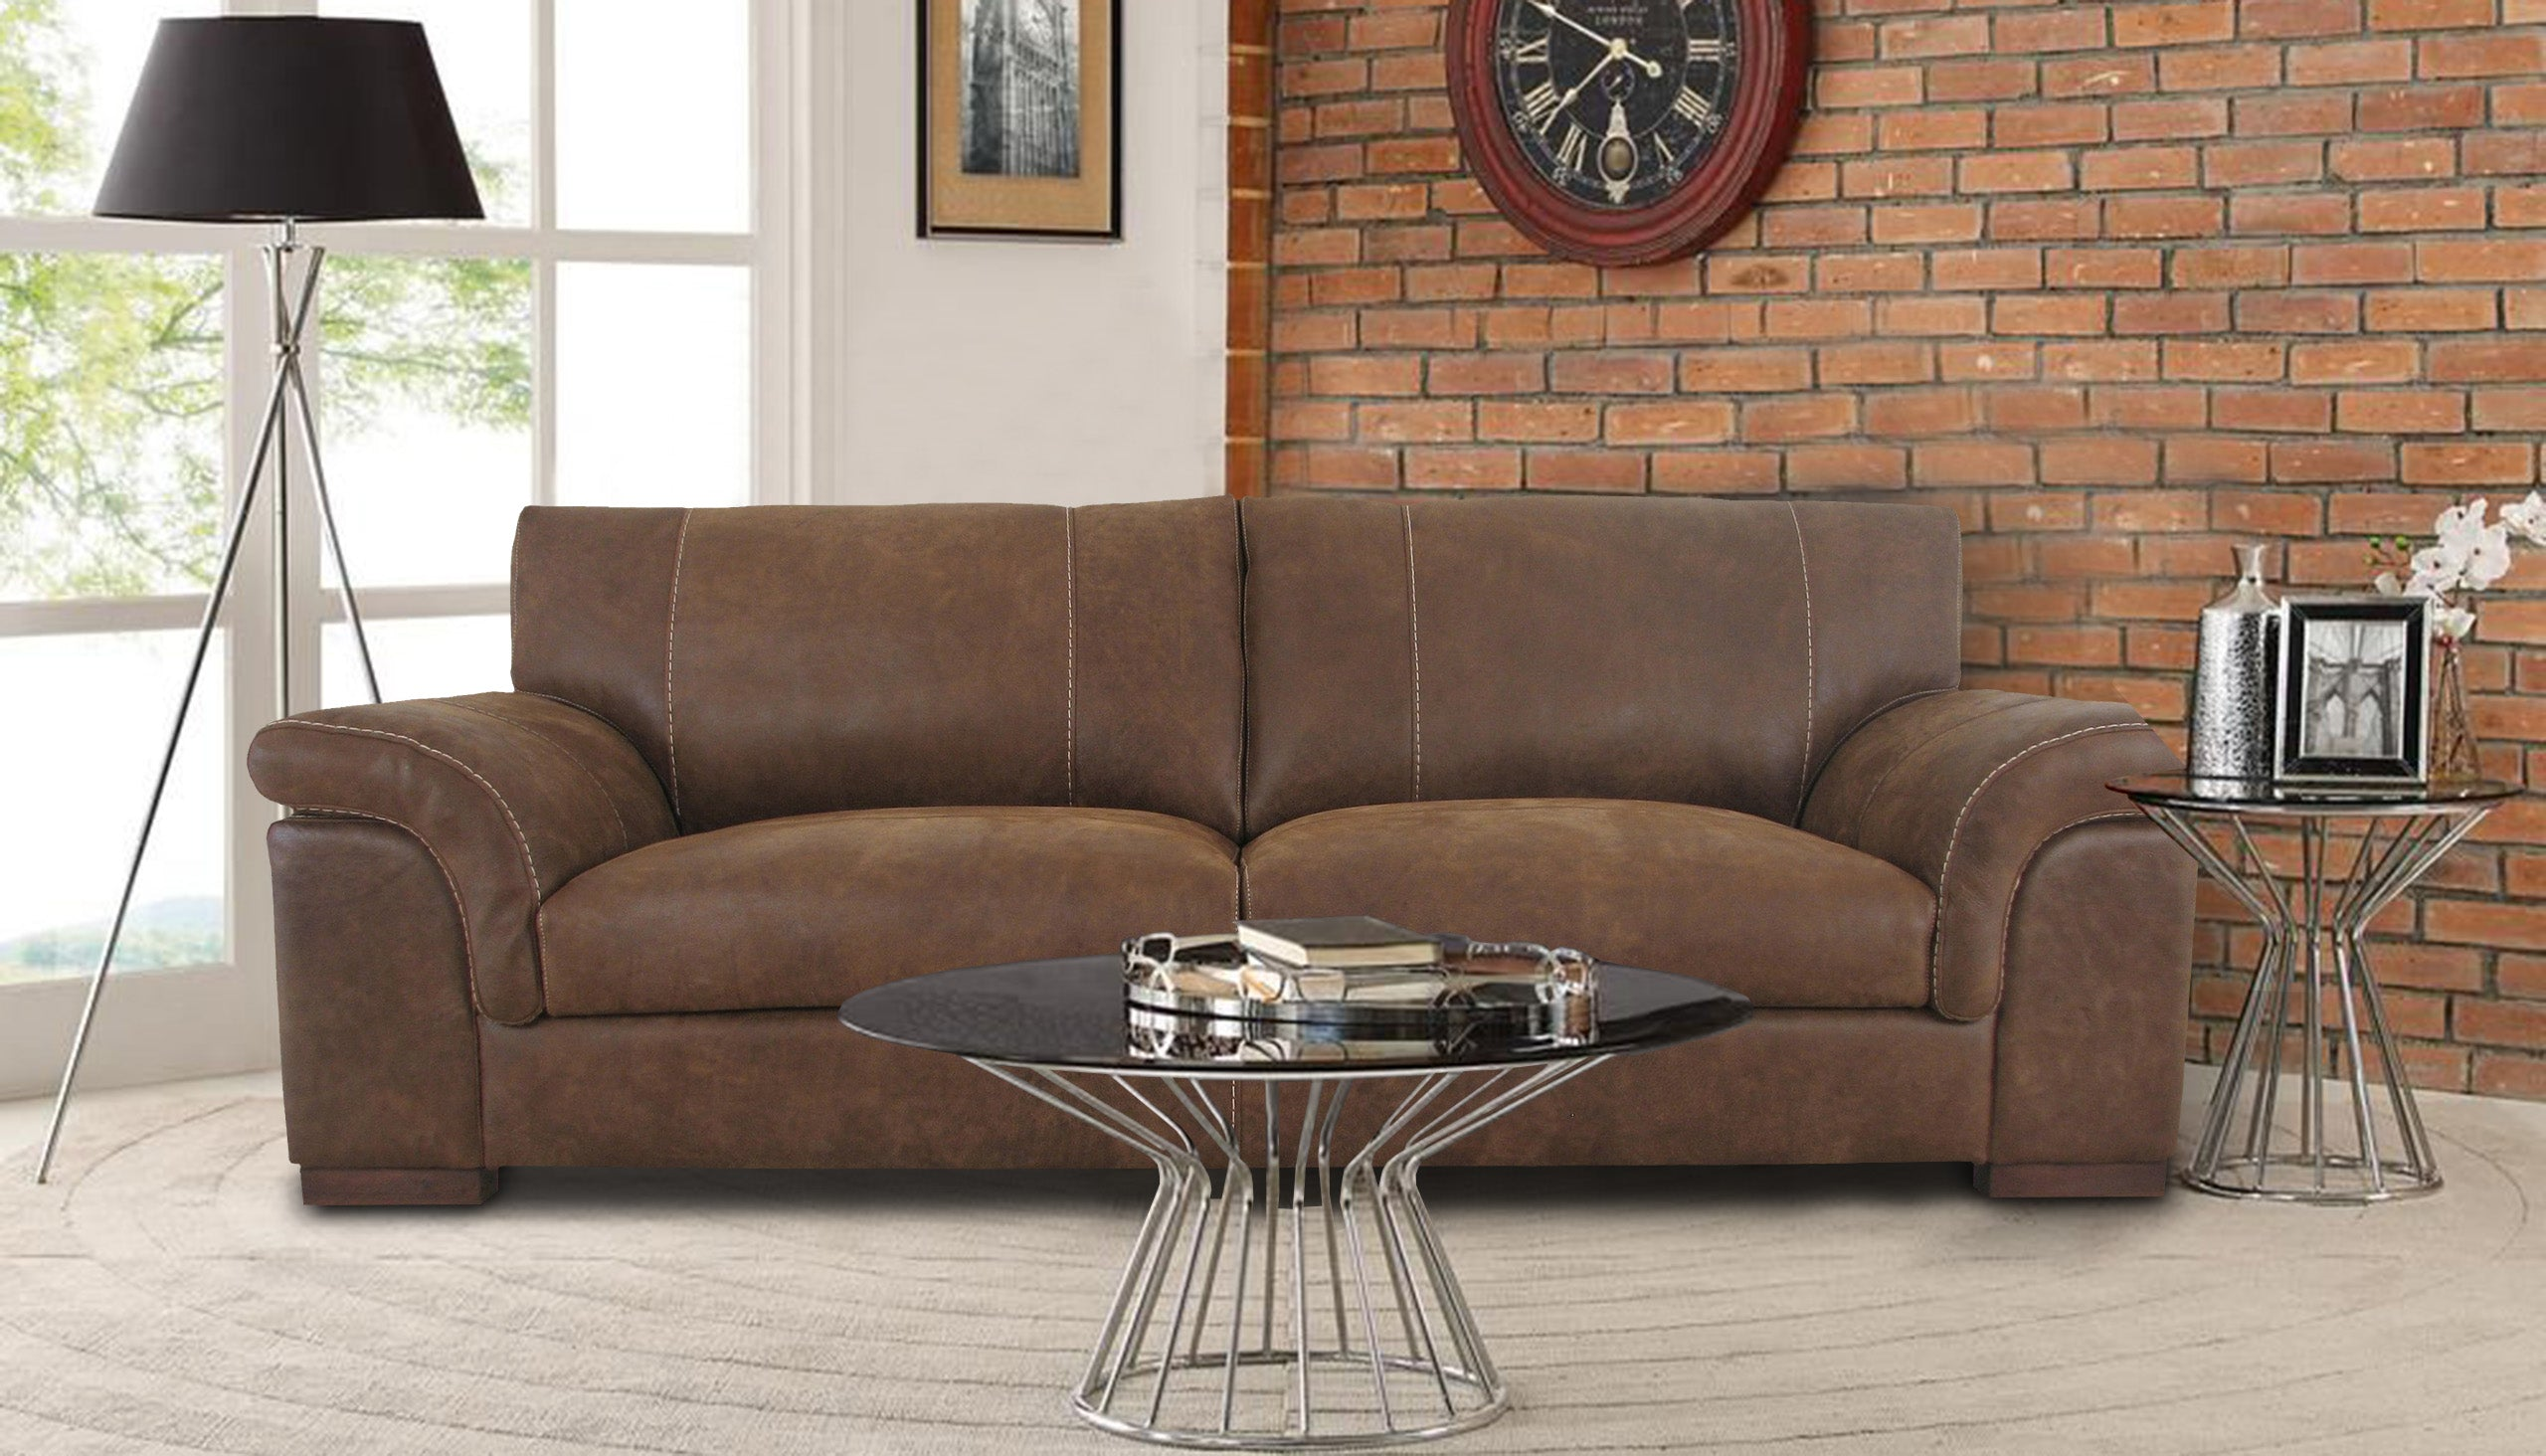 Guy 4 Seater Sofa in Leather